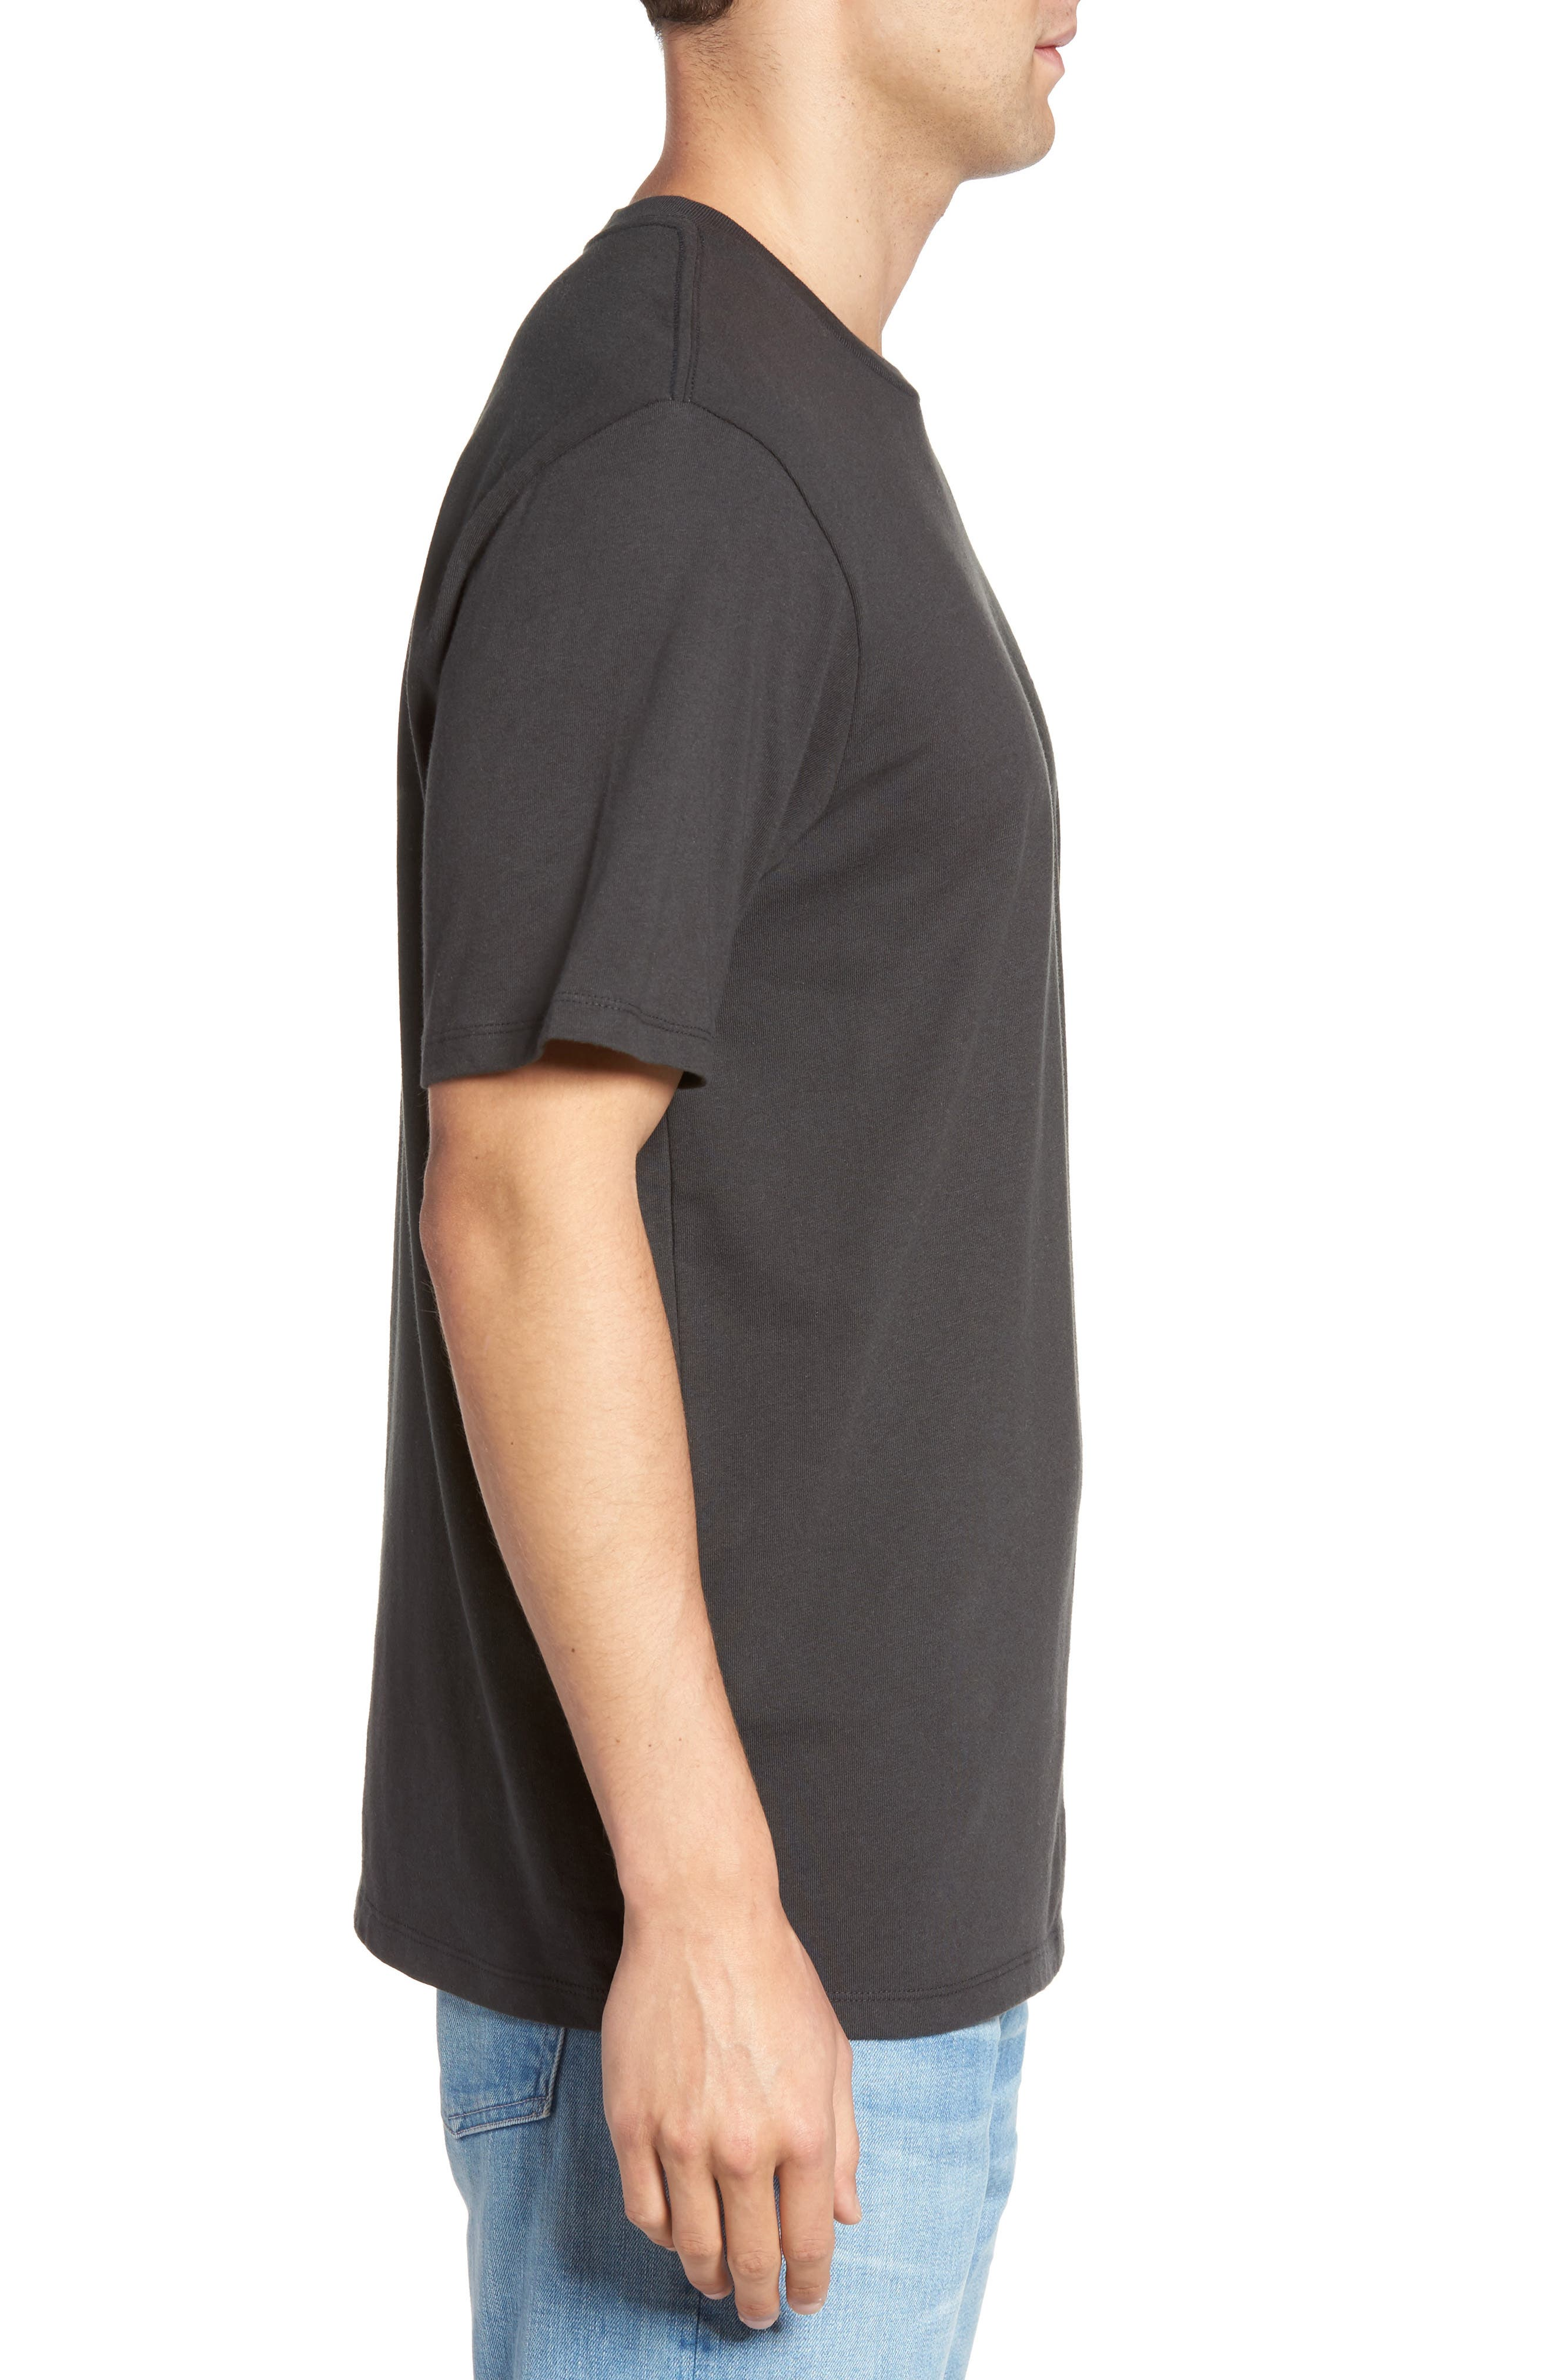 Grazed and Confused Graphic T-Shirt,                             Alternate thumbnail 3, color,                             021